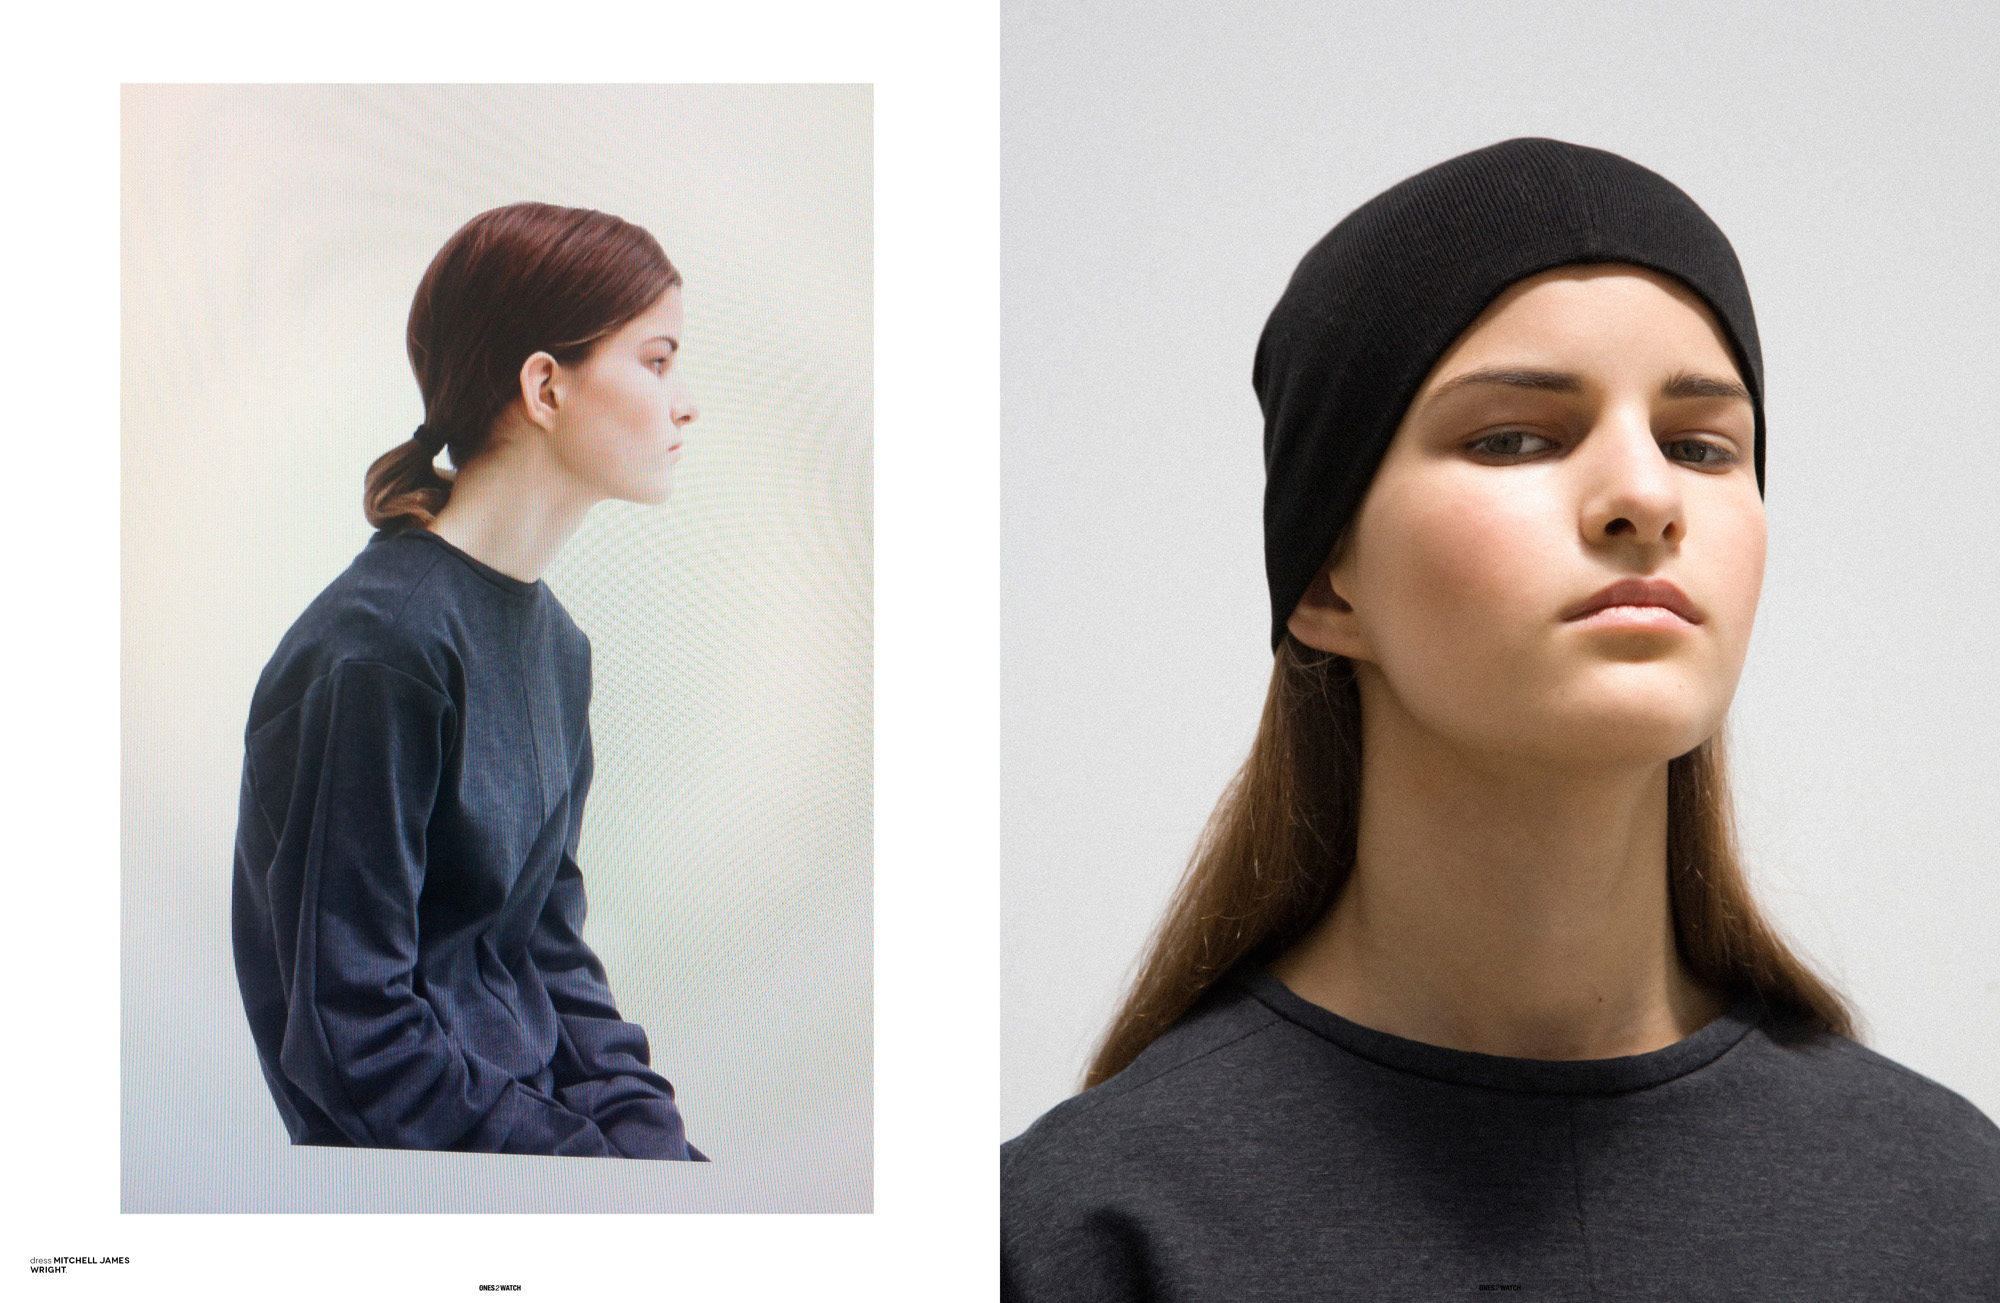 left: dress Mitchell James Wright. | right: dress Mitchell James Wright, beanie Maison Martin Margiela.